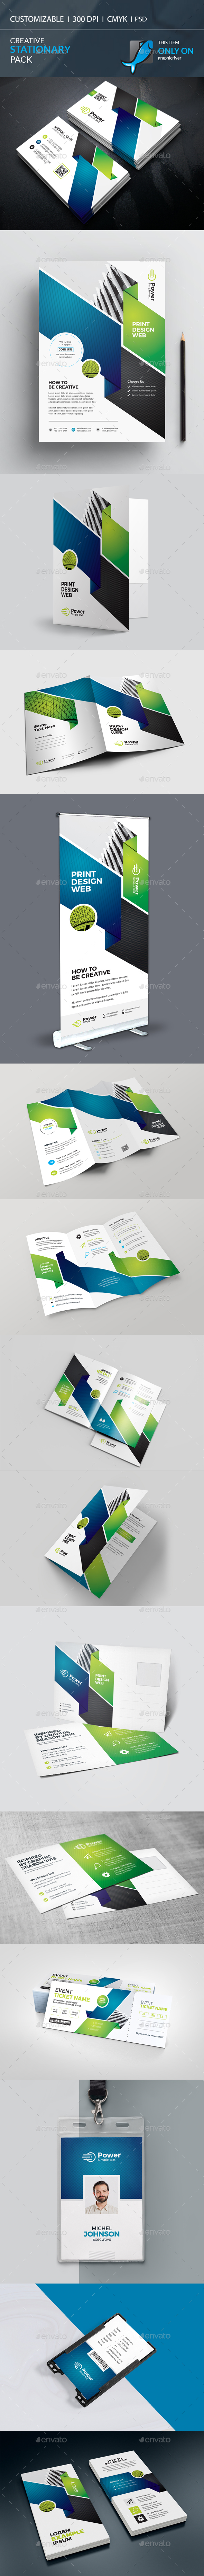 Business Stationary Pack - Stationery Print Templates